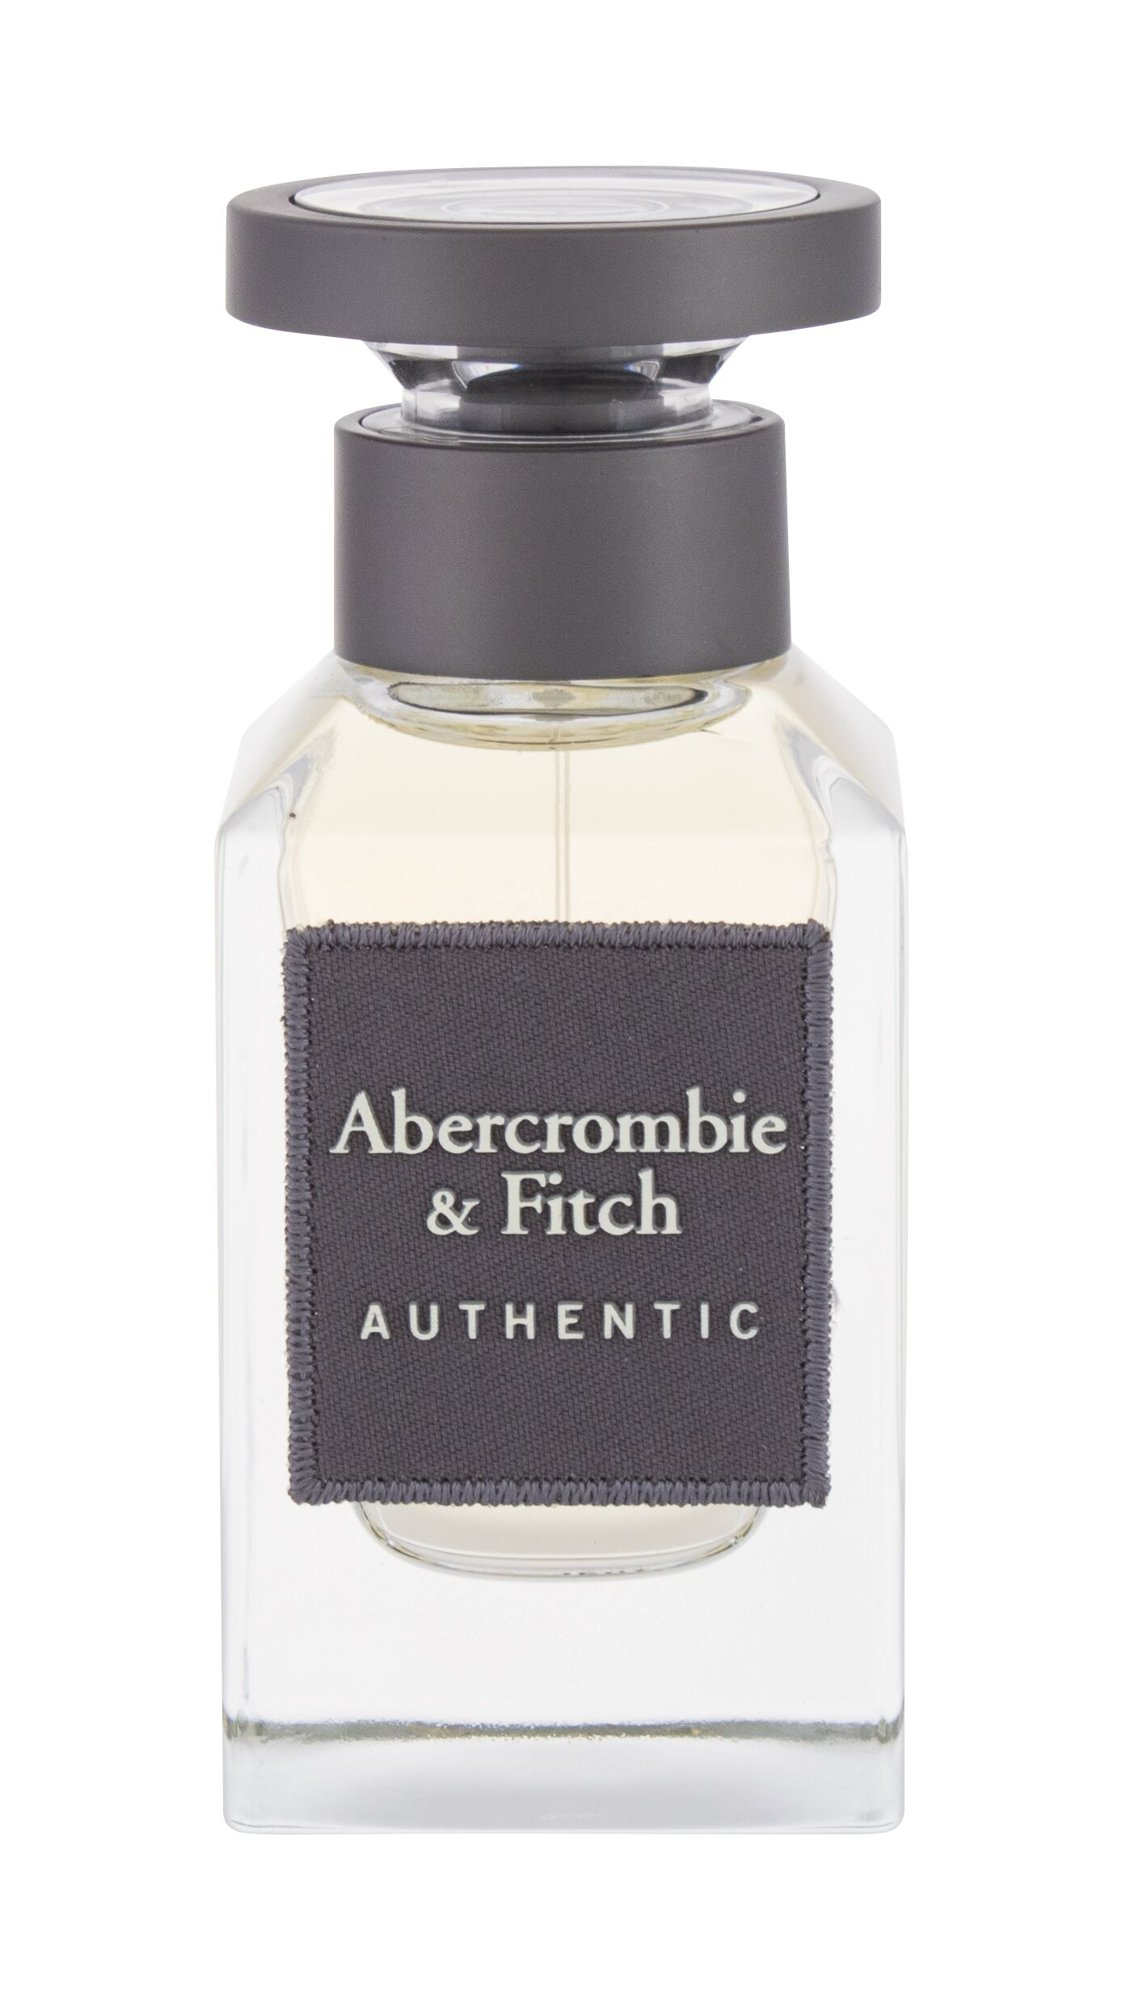 Abercrombie & Fitch Authentic, Toaletní voda 50ml